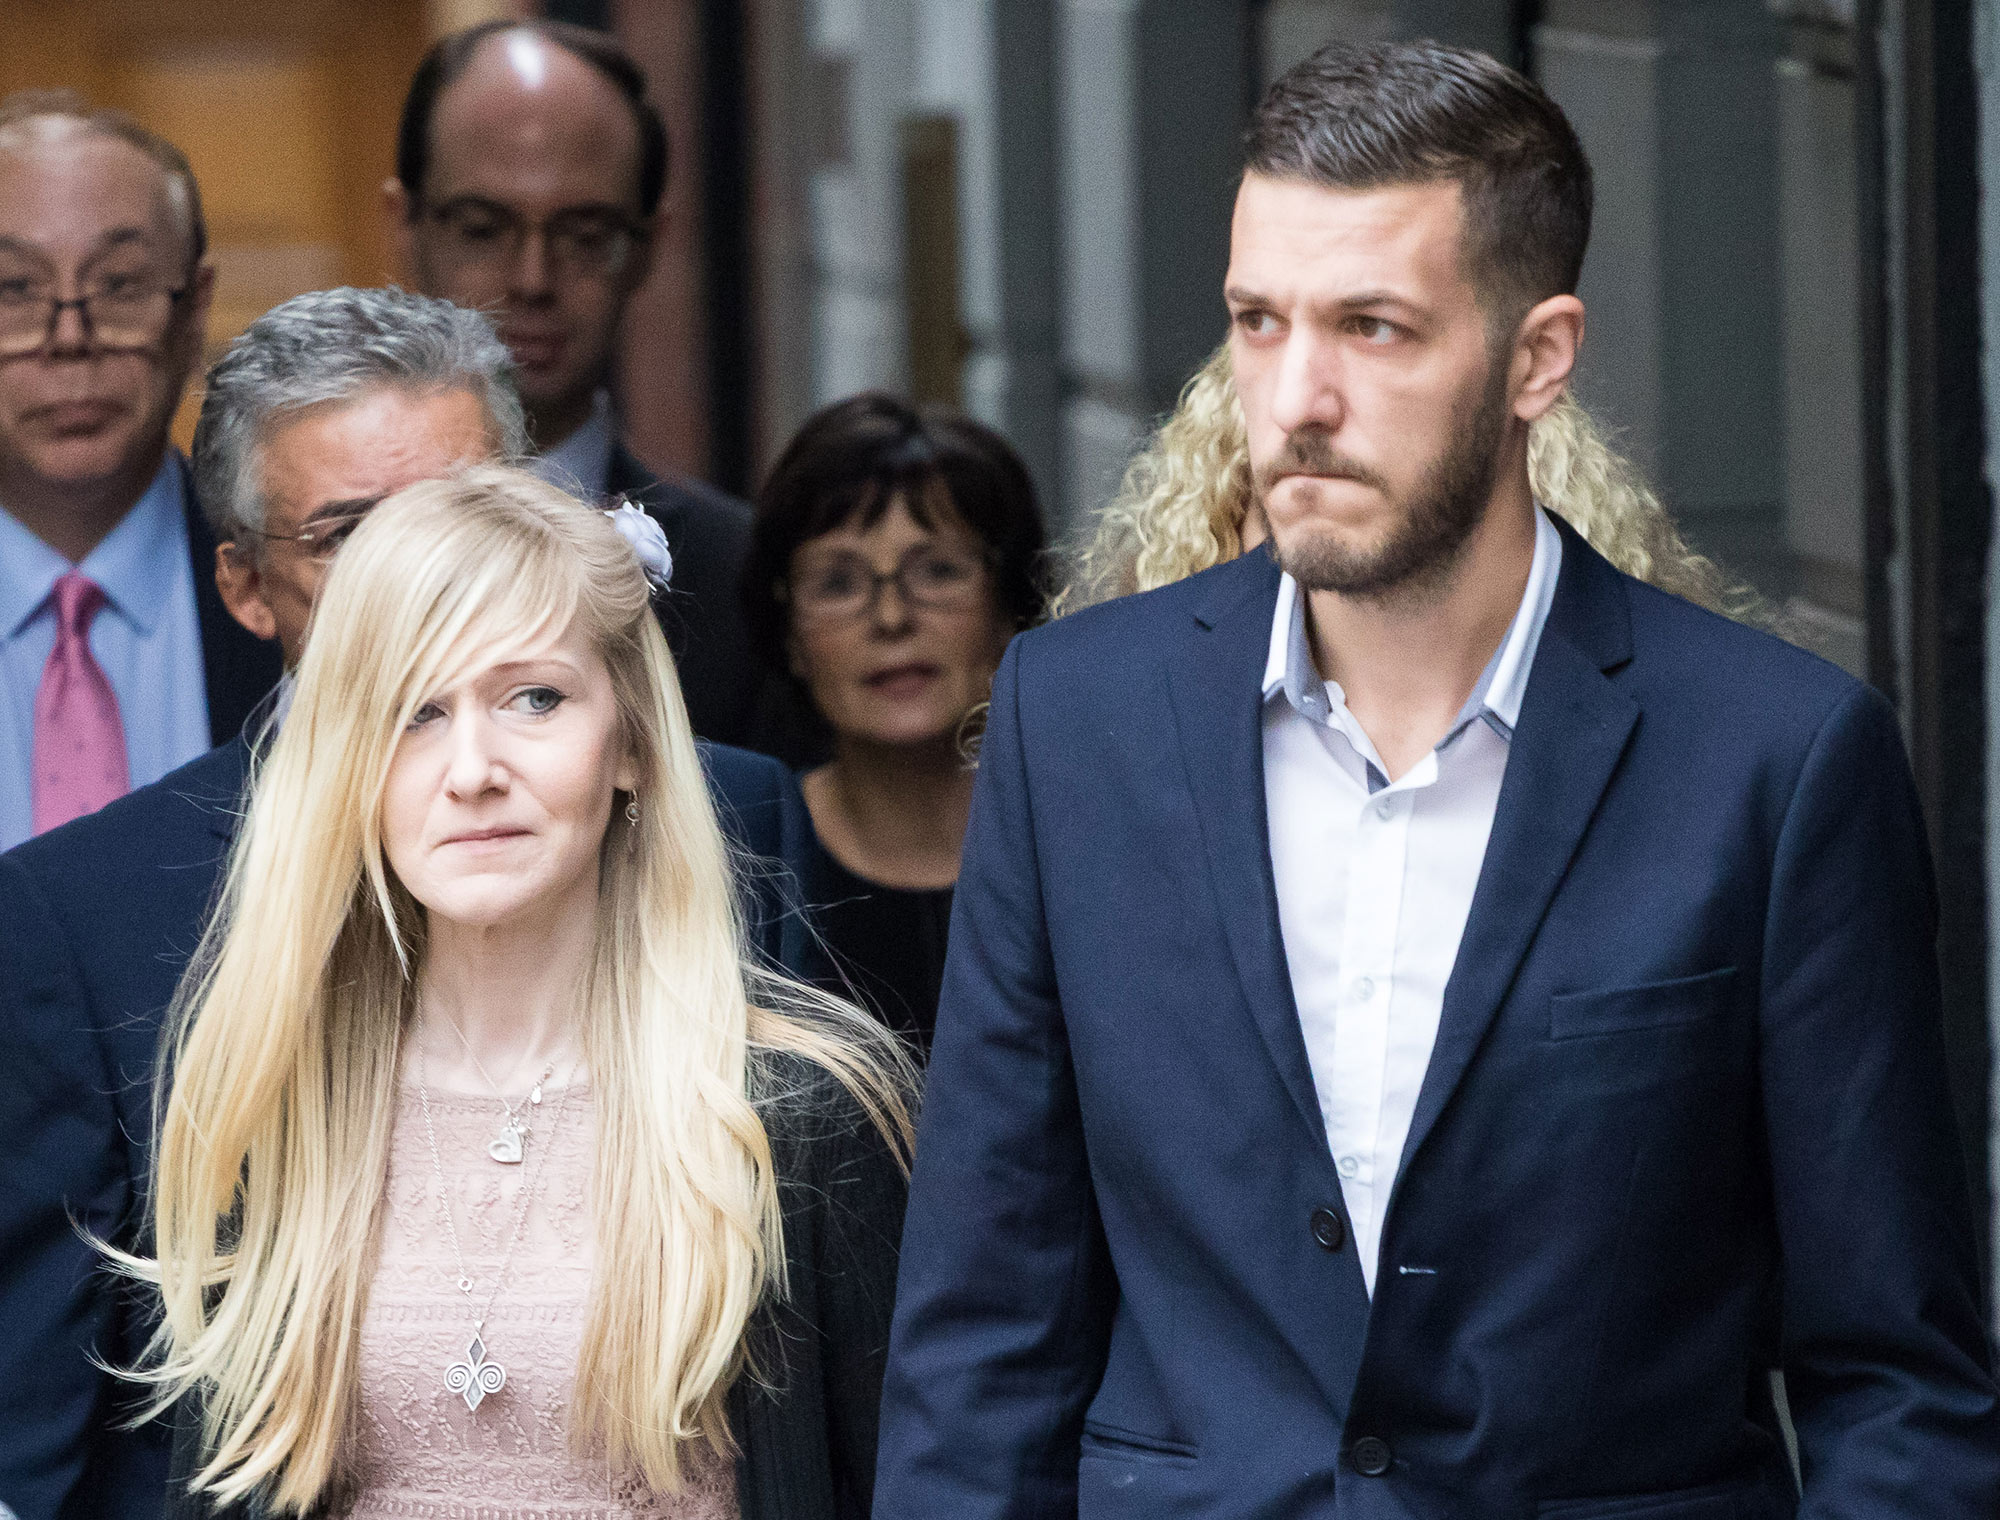 Charlie Gard Parents Attend Hearing Today